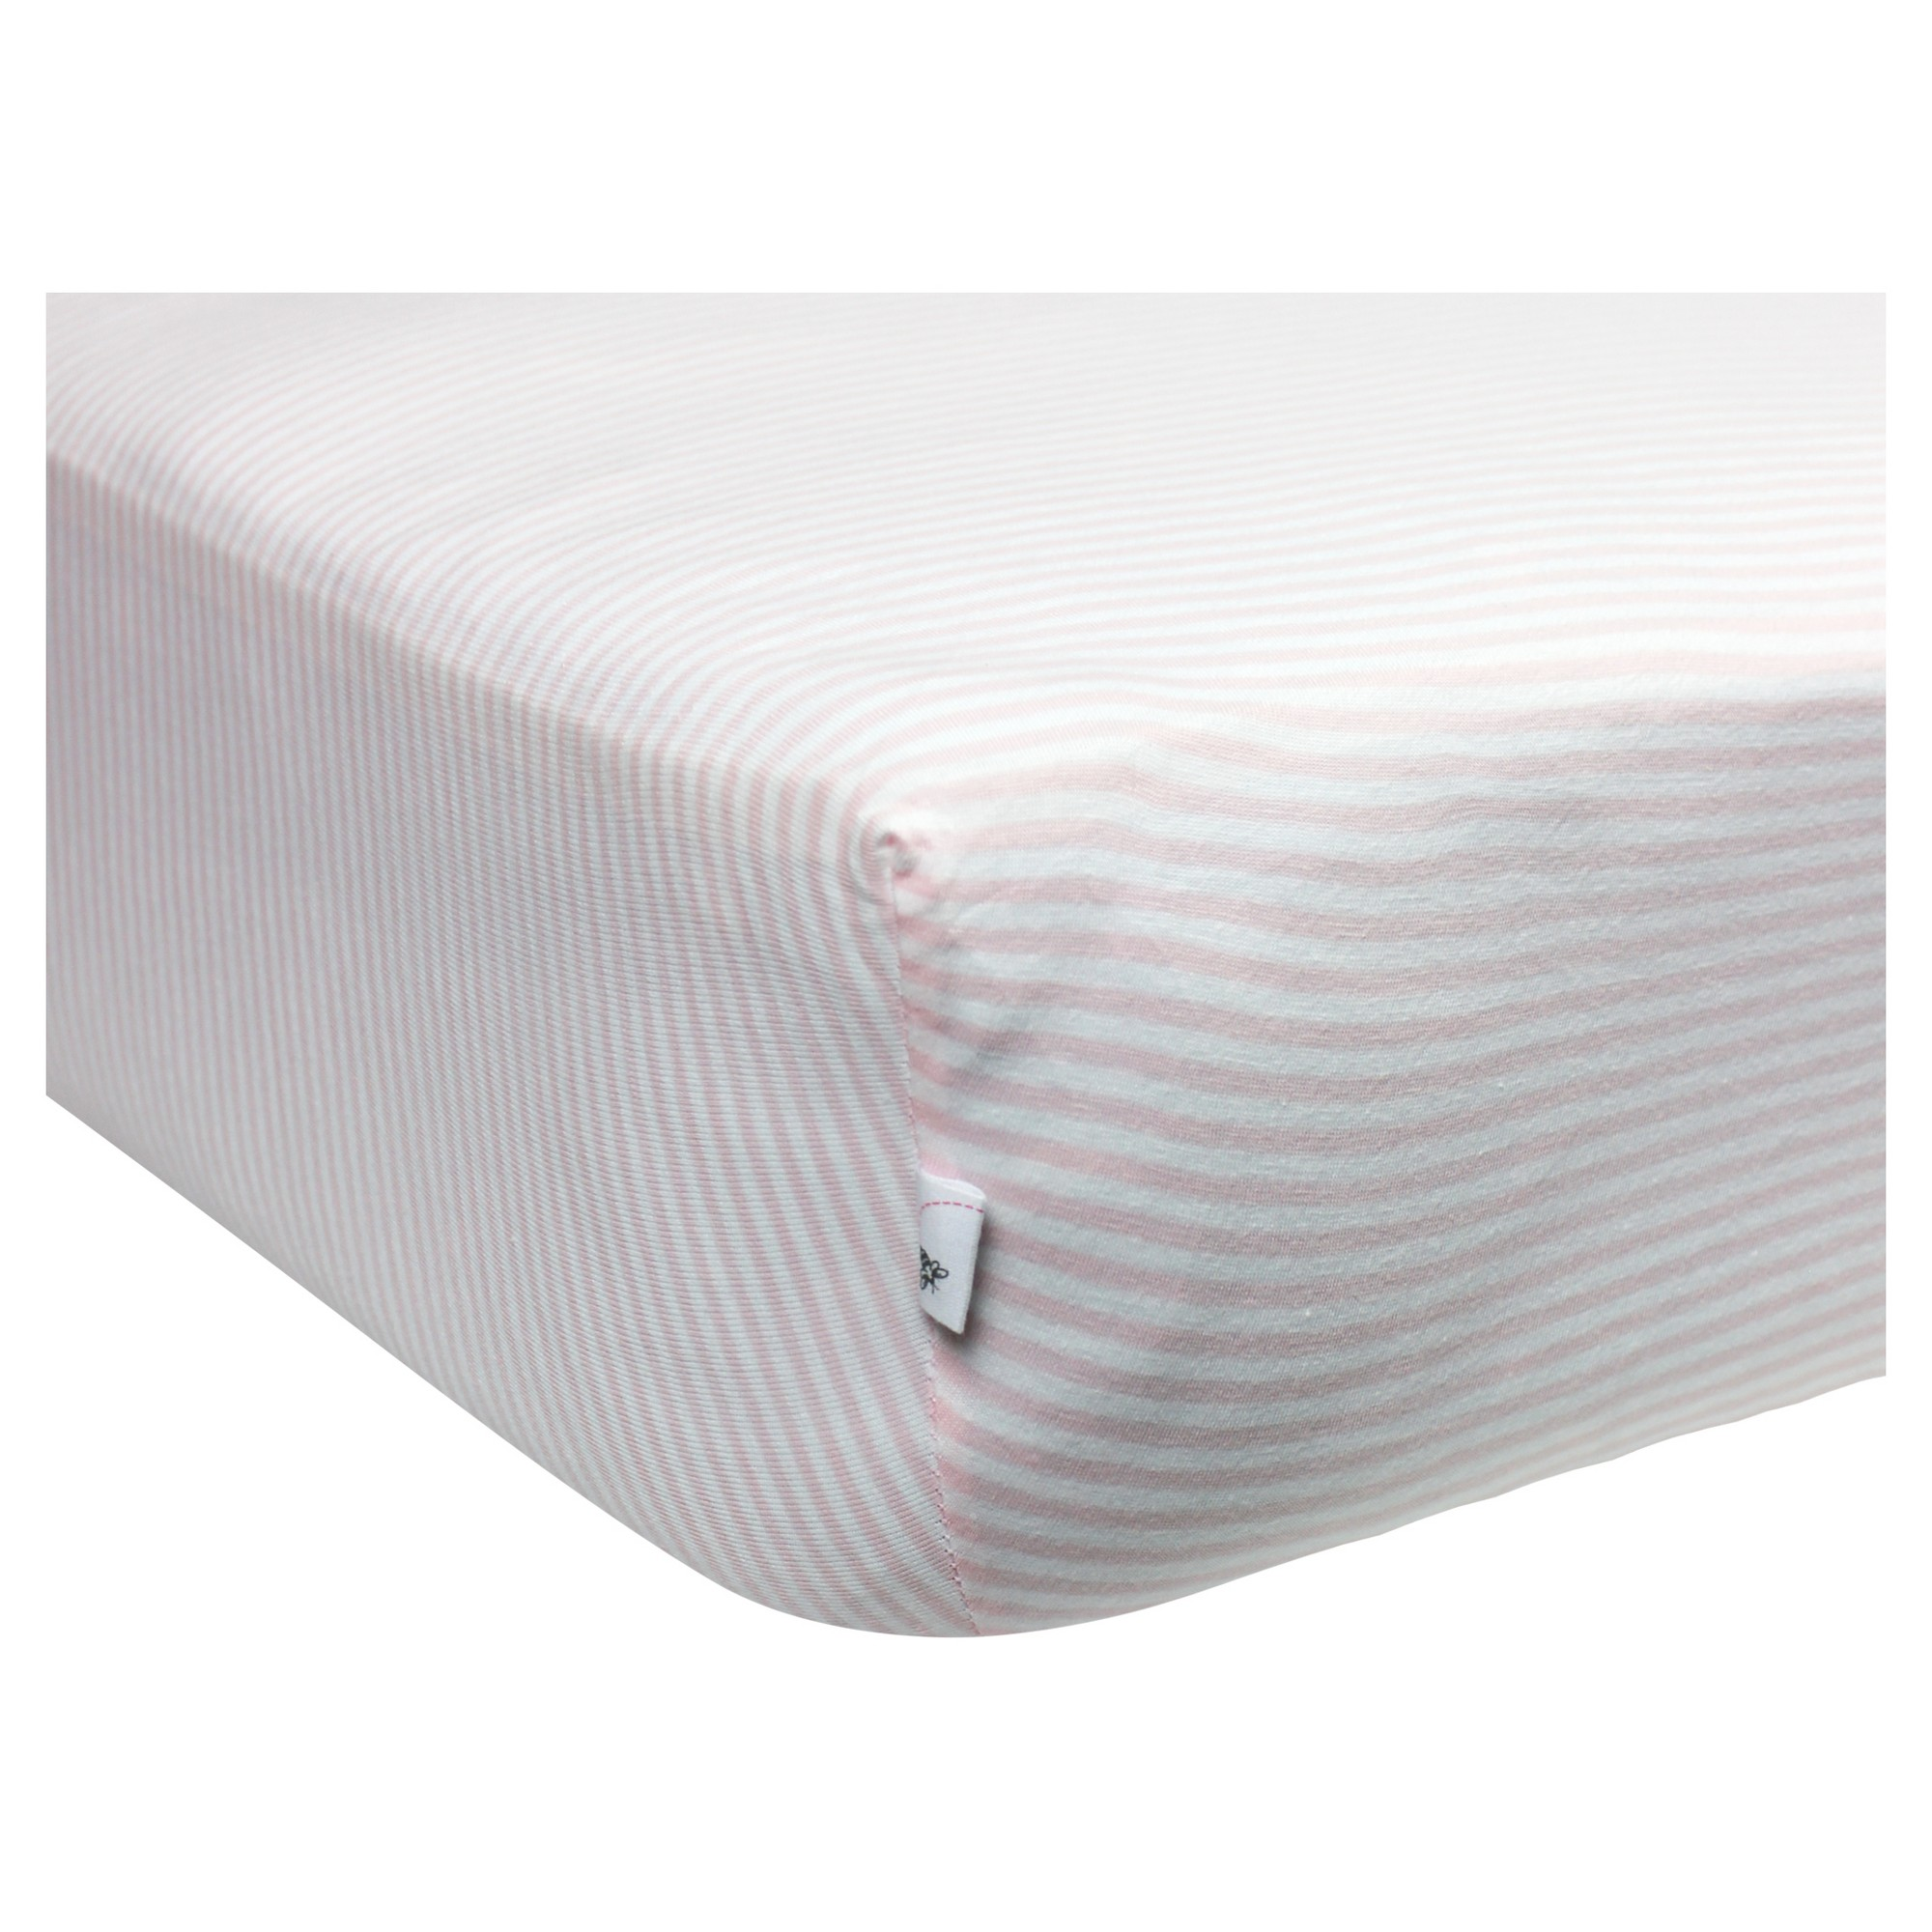 Burt's Bees Baby Organic Fitted Crib Sheet - Bee Essentials - Pink